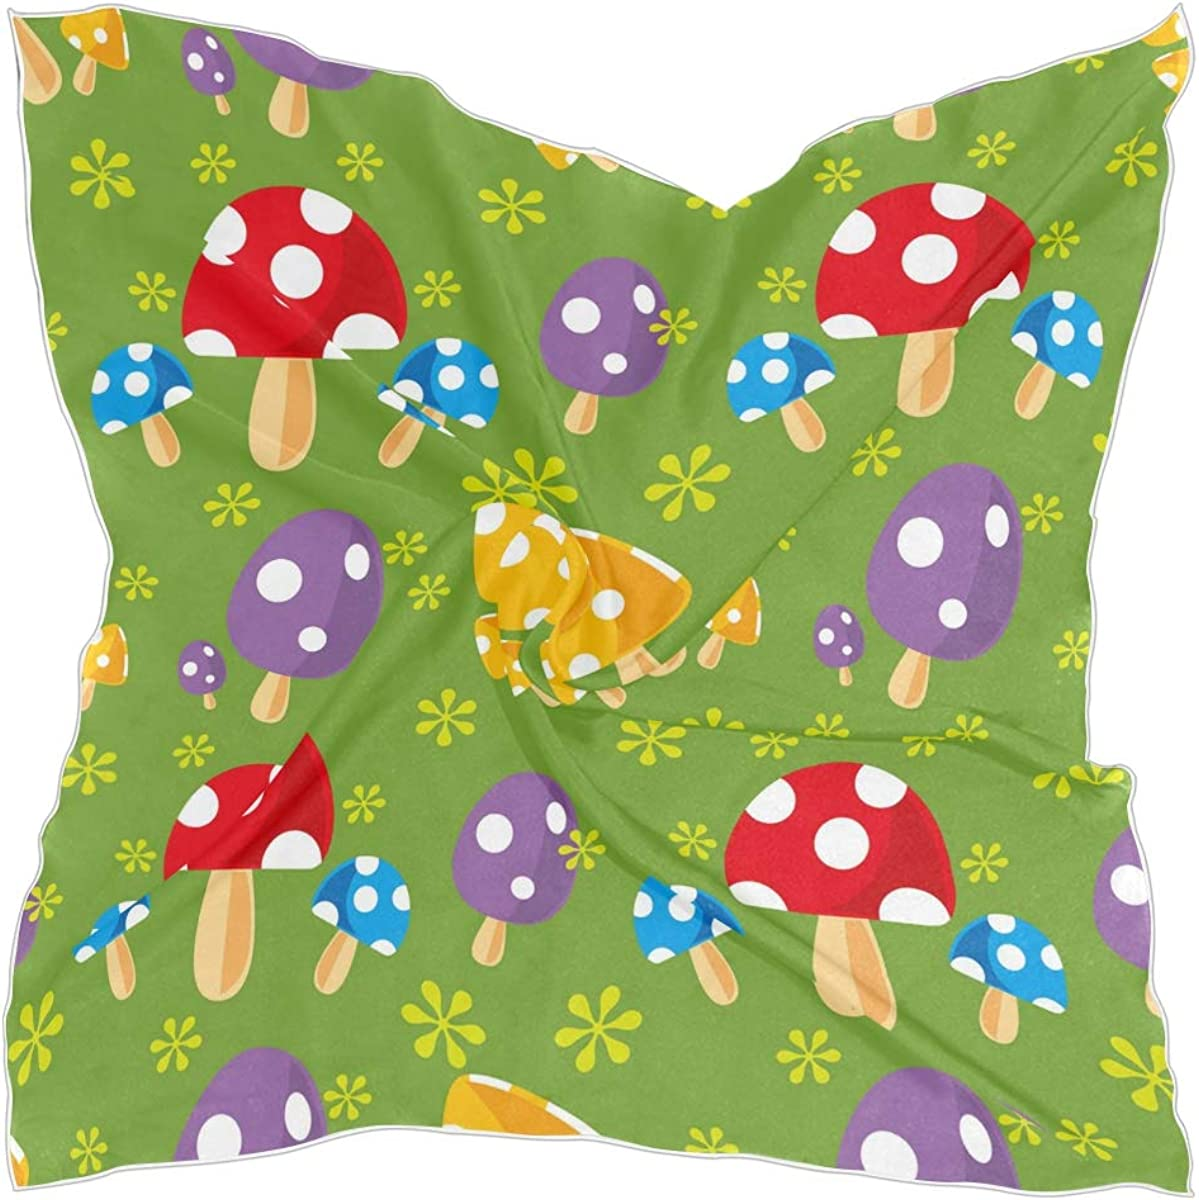 24inch Women's Square Silk Seamless Mushroom Pattern Hair Scarves and Wraps Headscarf for Gift(pm)